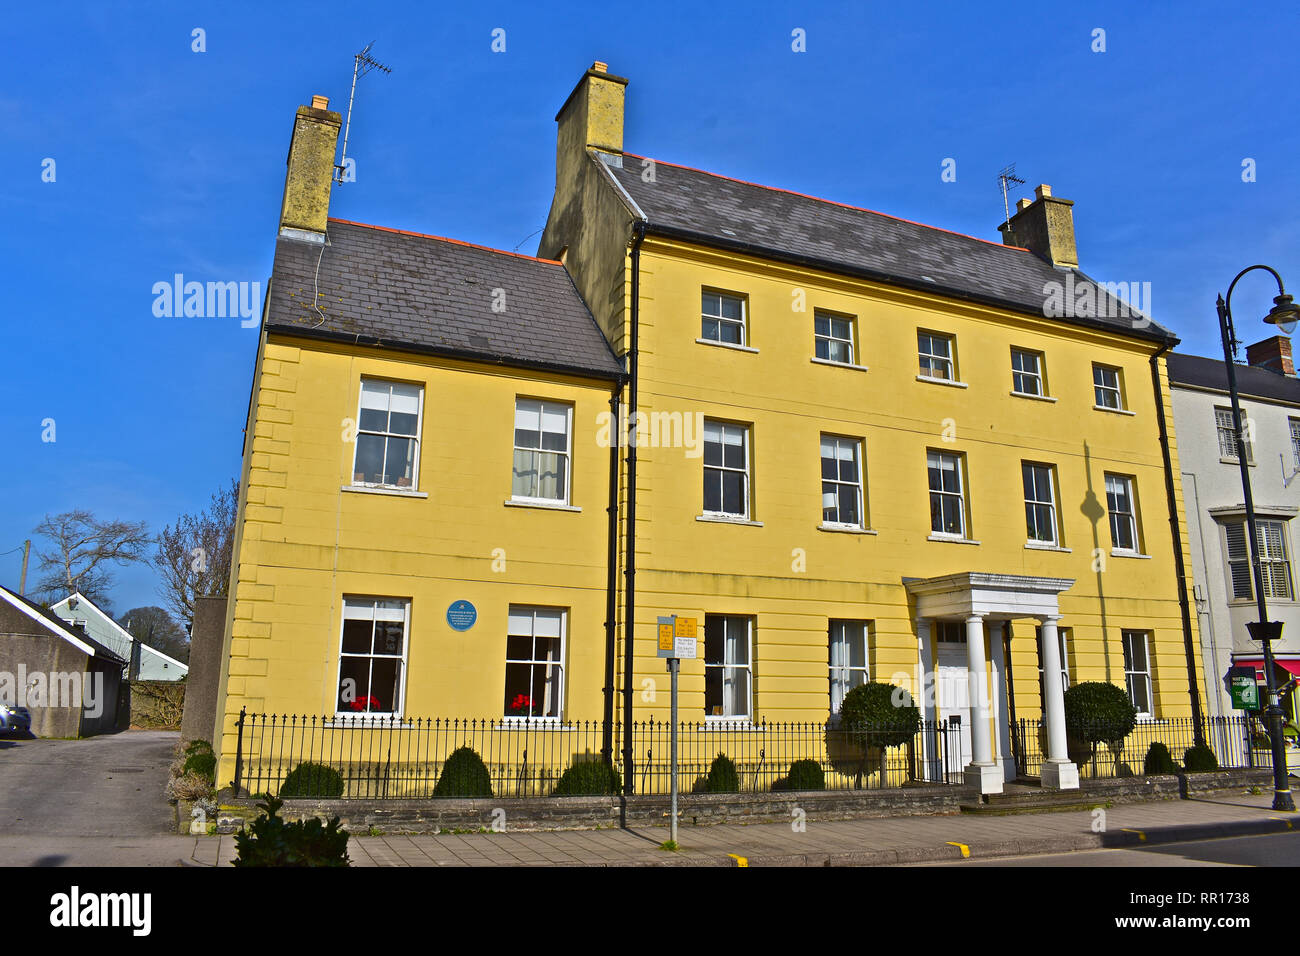 The historic Georgian Woodstock House on the High Street dates from the 18th Century and was the home of the wealthy local Wyndham Family of Dunraven. - Stock Image